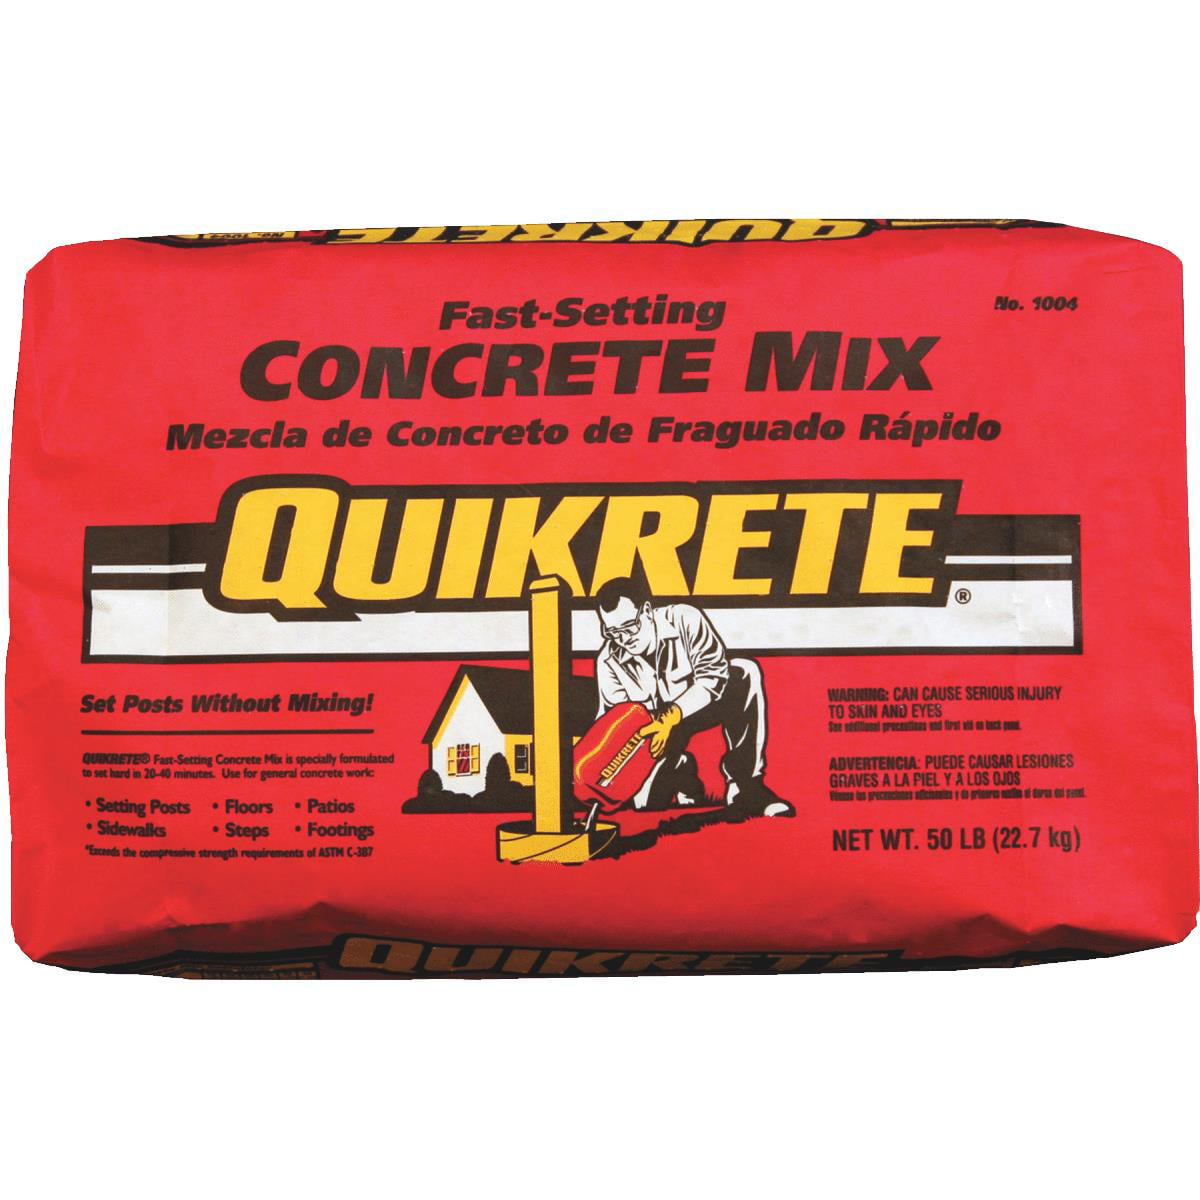 Quickrete Fast-Setting Concrete Mix by Quikrete Companies